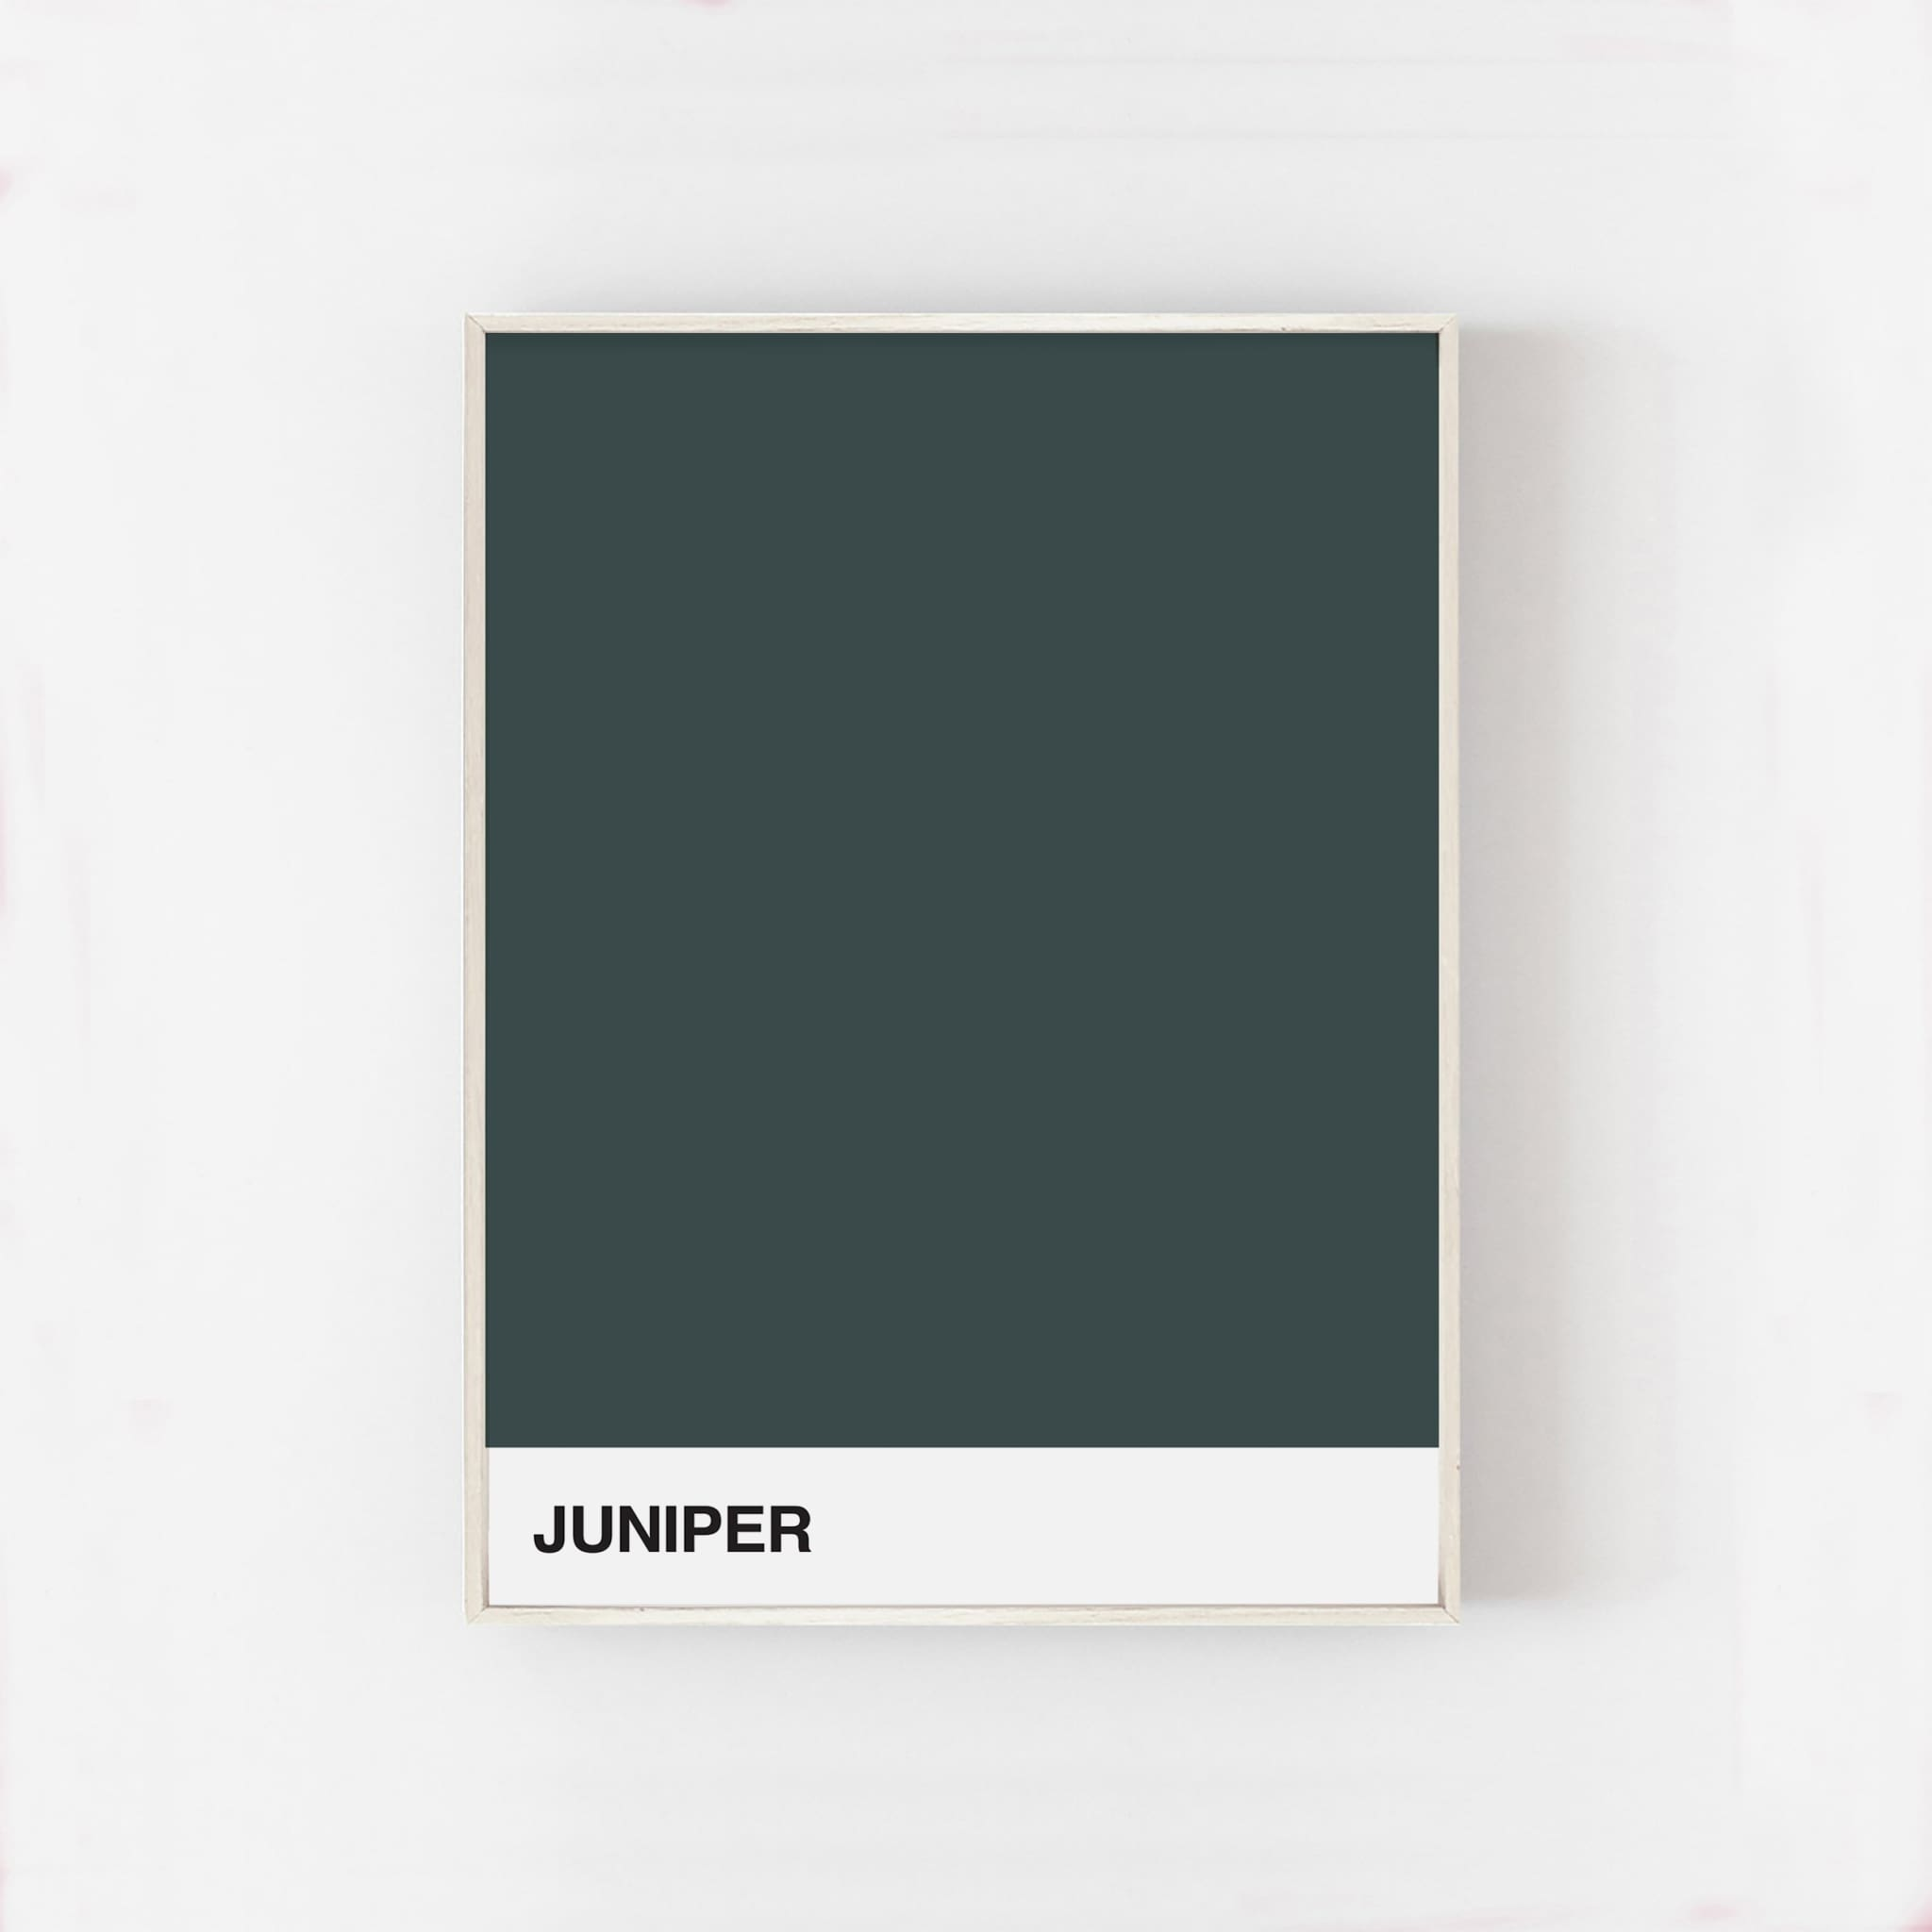 JUNIPER - HONEYMOON HOTEL